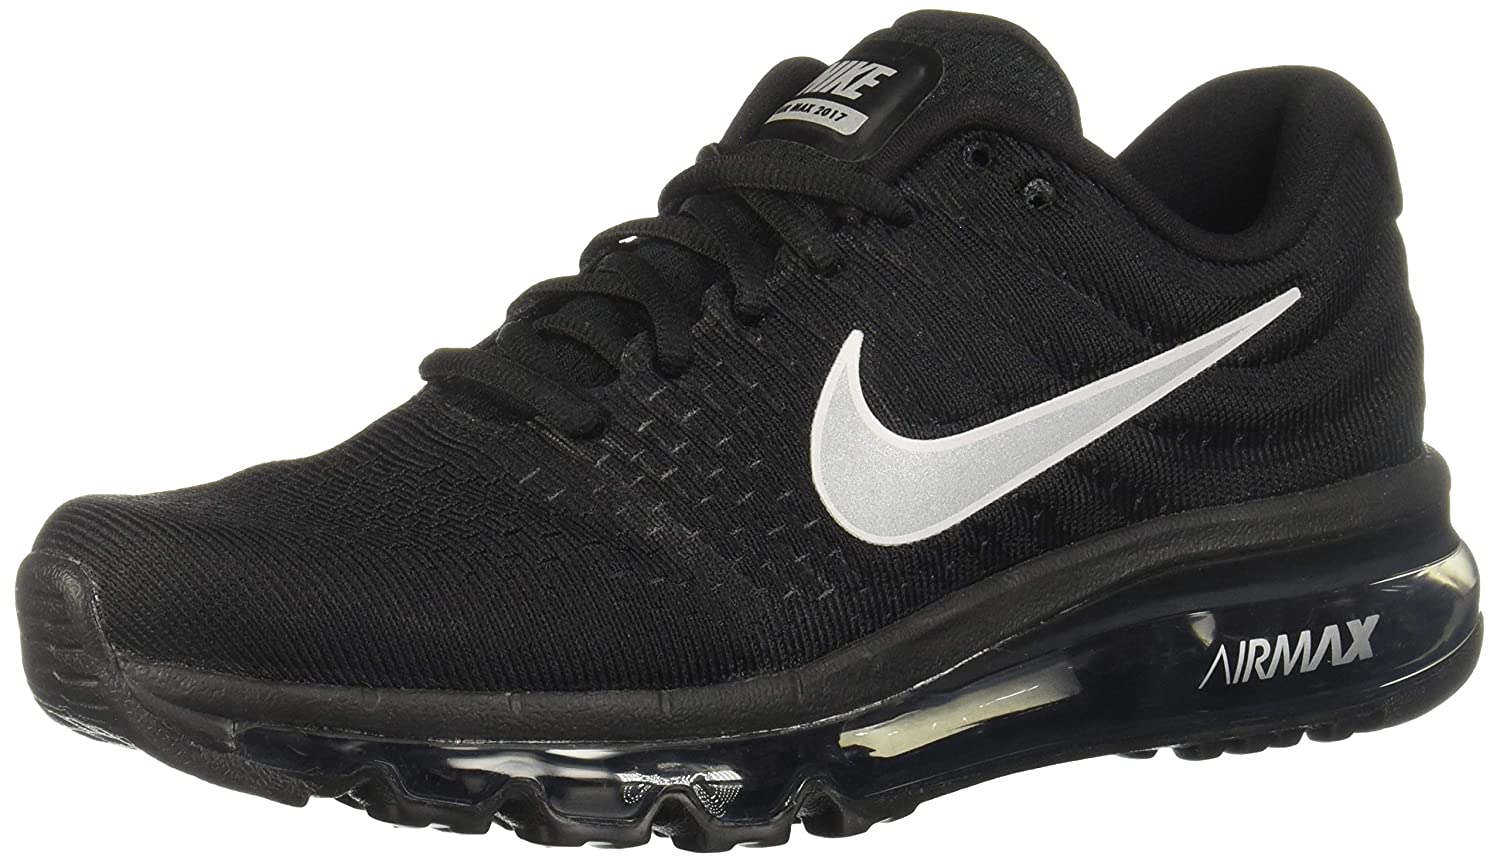 Nike Womens Air Max 2017 Running Shoes Black/White/Anthracite 849560-001  Size 7